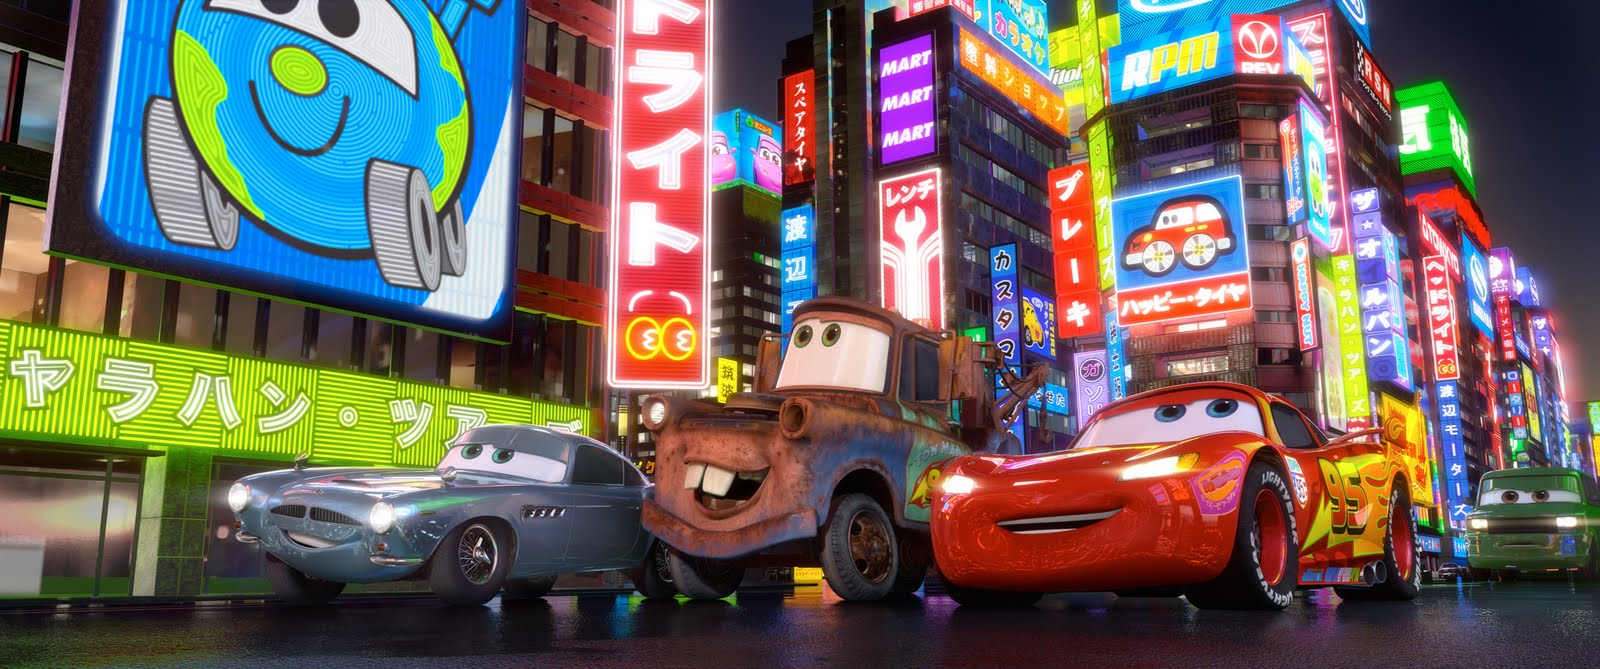 thursday april 28 2011 david hobbscap disney pixar cars 2 movie character - Cars The Movie 2 Characters